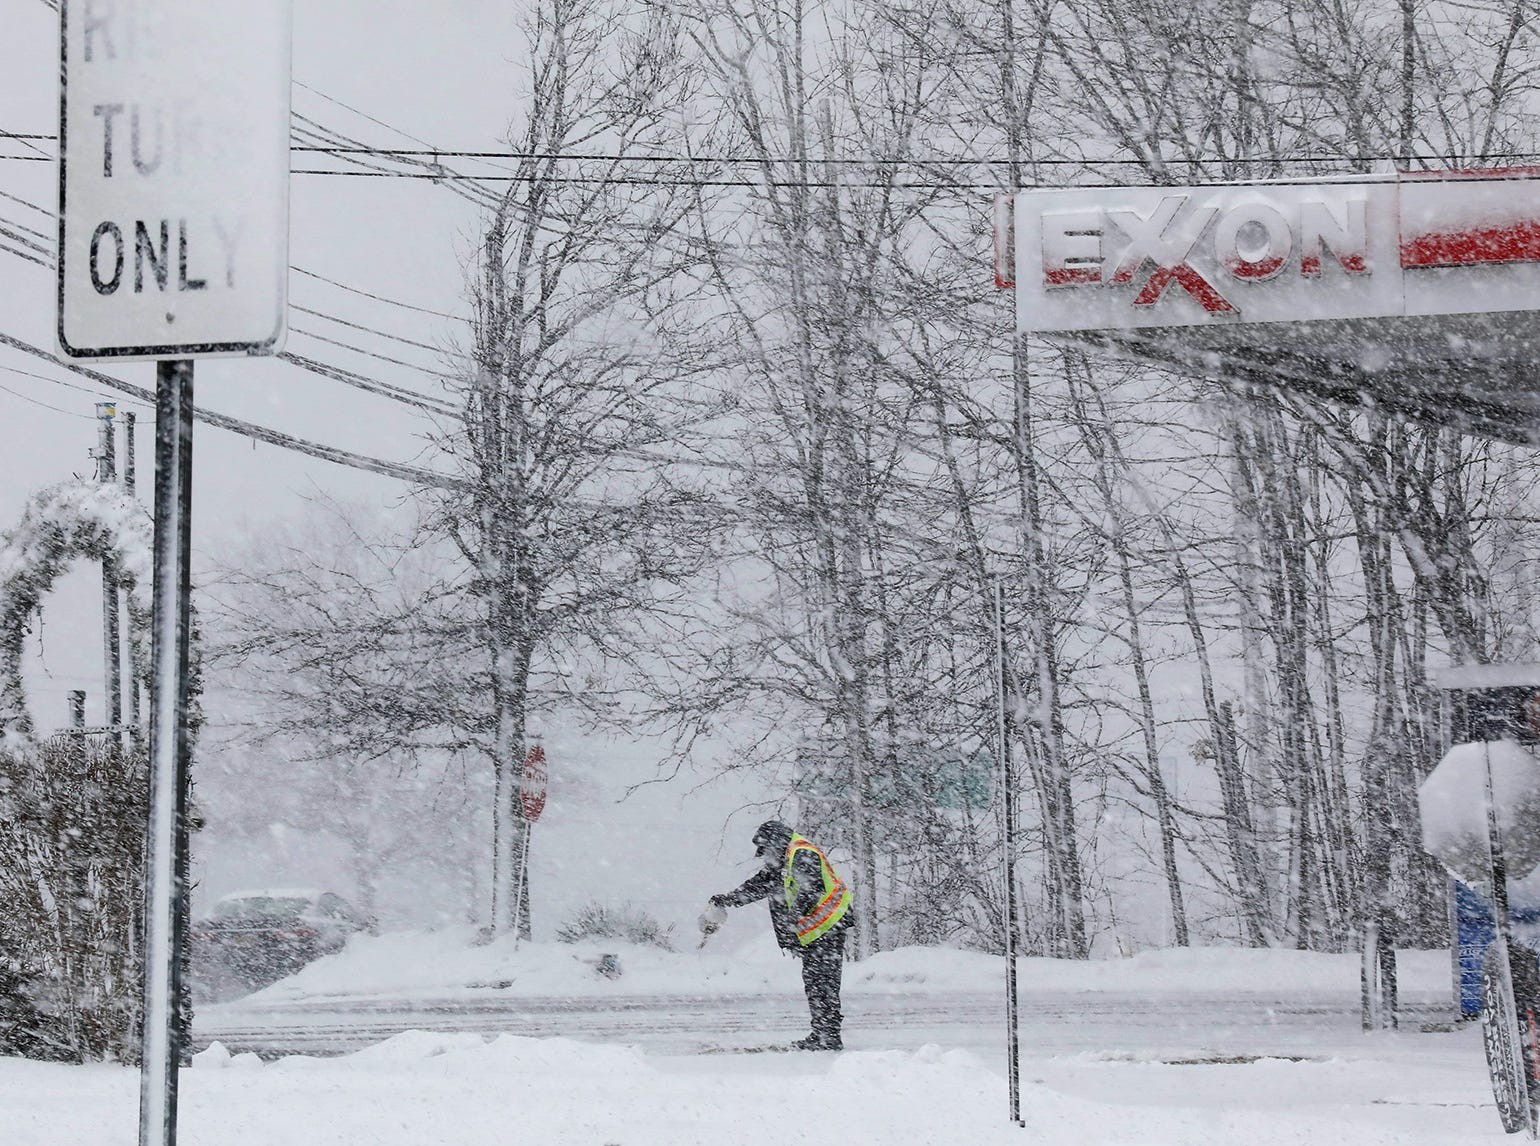 An Exxon station on the southbound side of Route 23 in Wayne at the height of the afternoons snowfall. After shoveling, an attendant drops some salt on the road surface.Pedota POY 2018